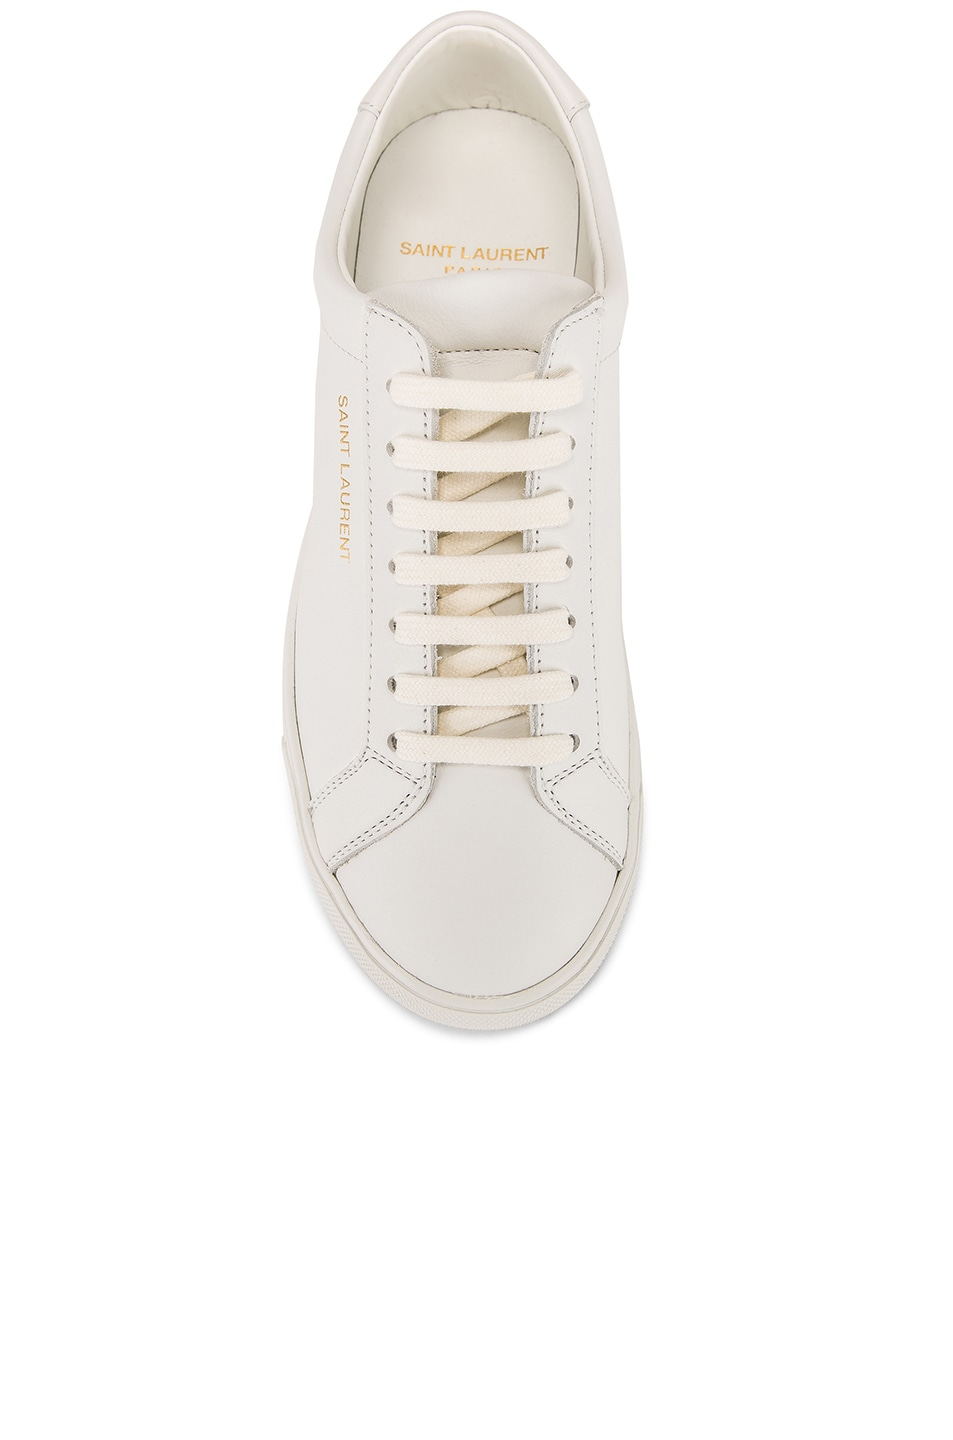 Image 4 of Saint Laurent Andy Sneaker in White